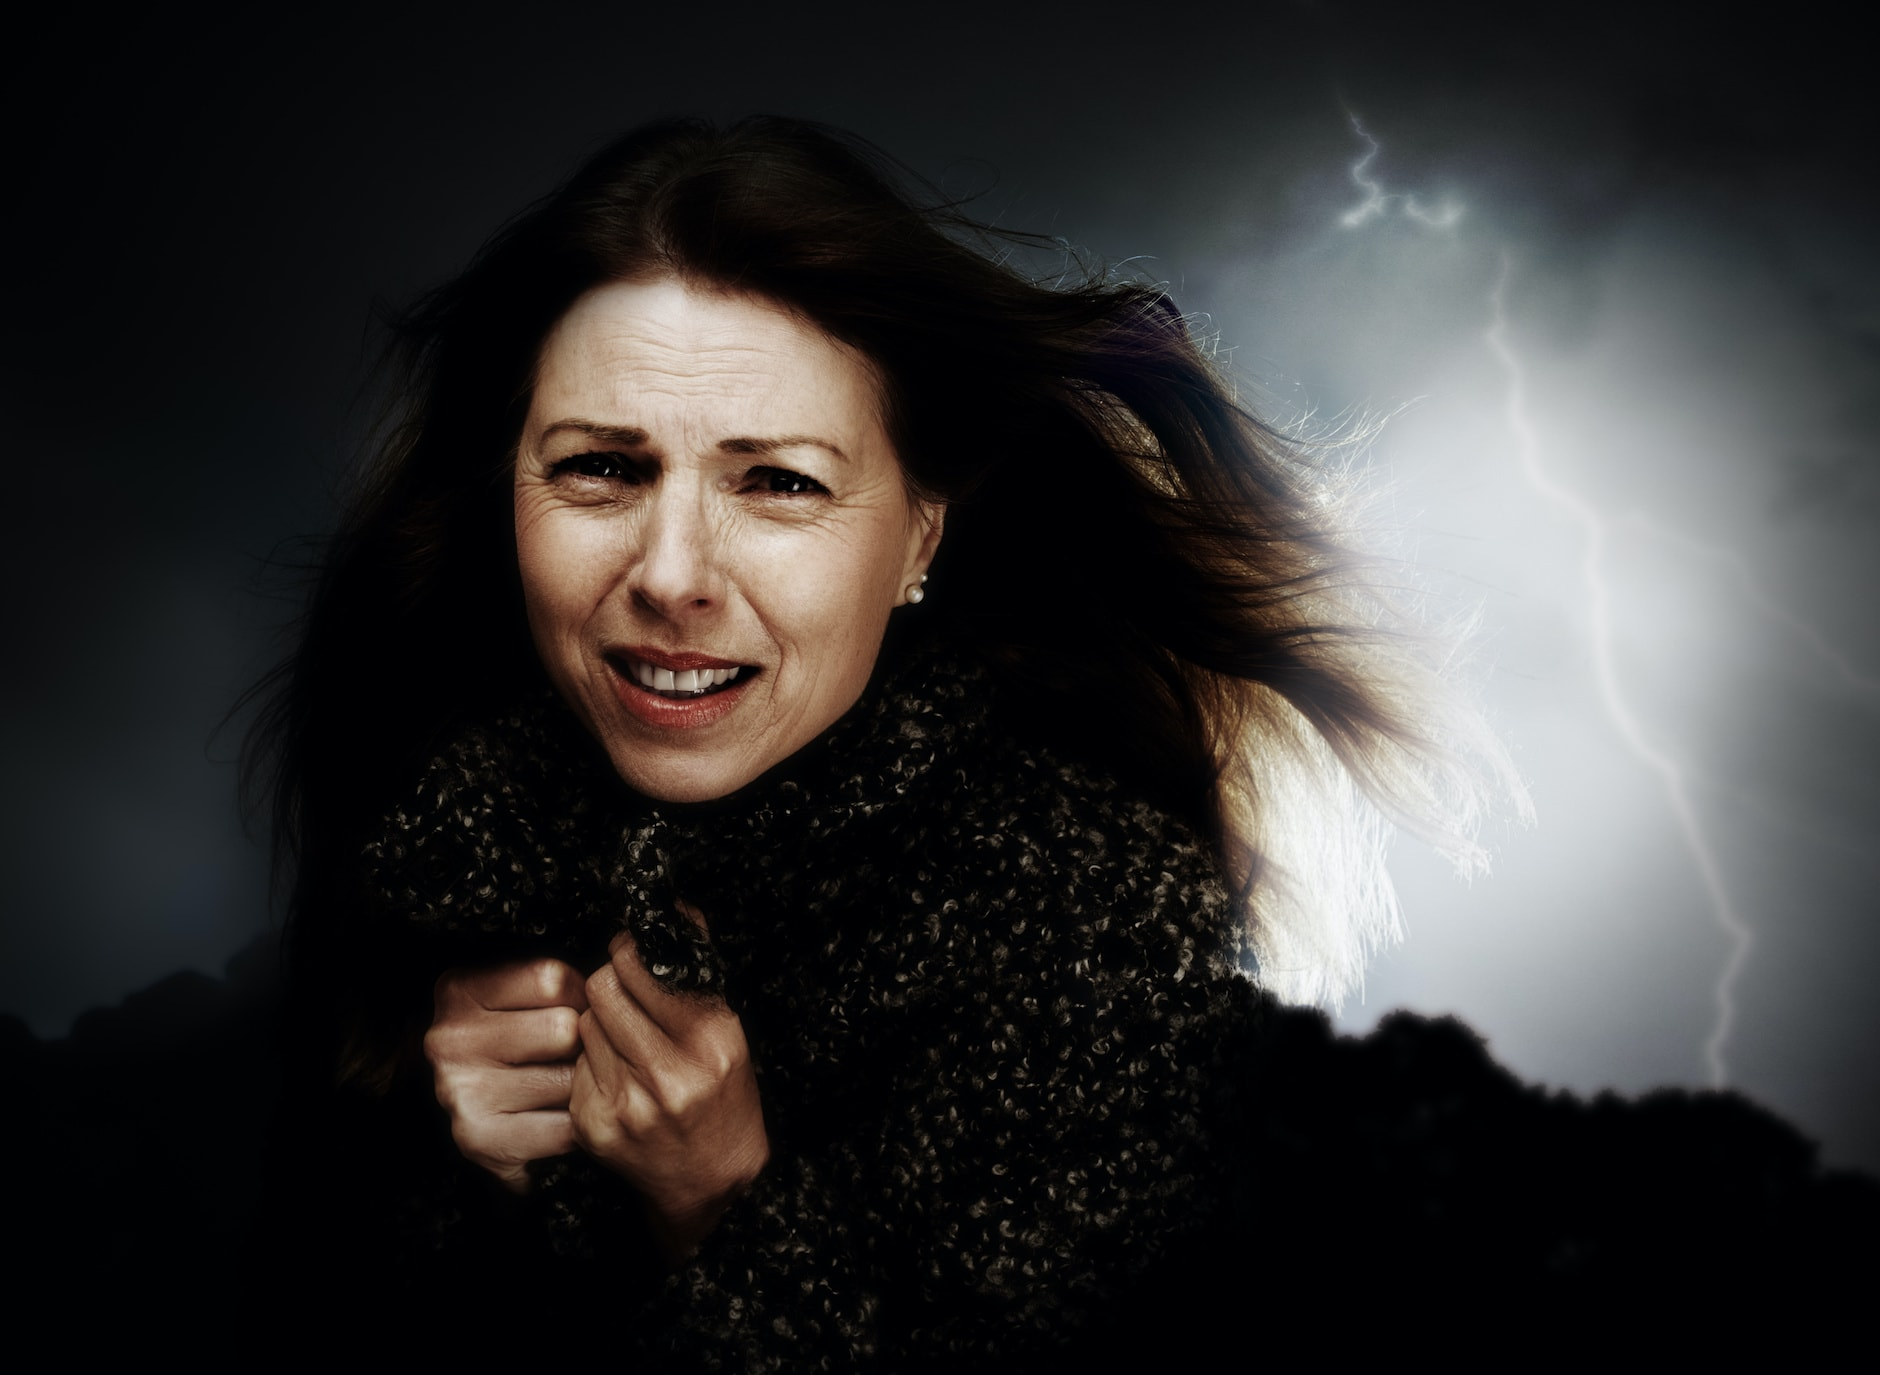 woman in thunder storm